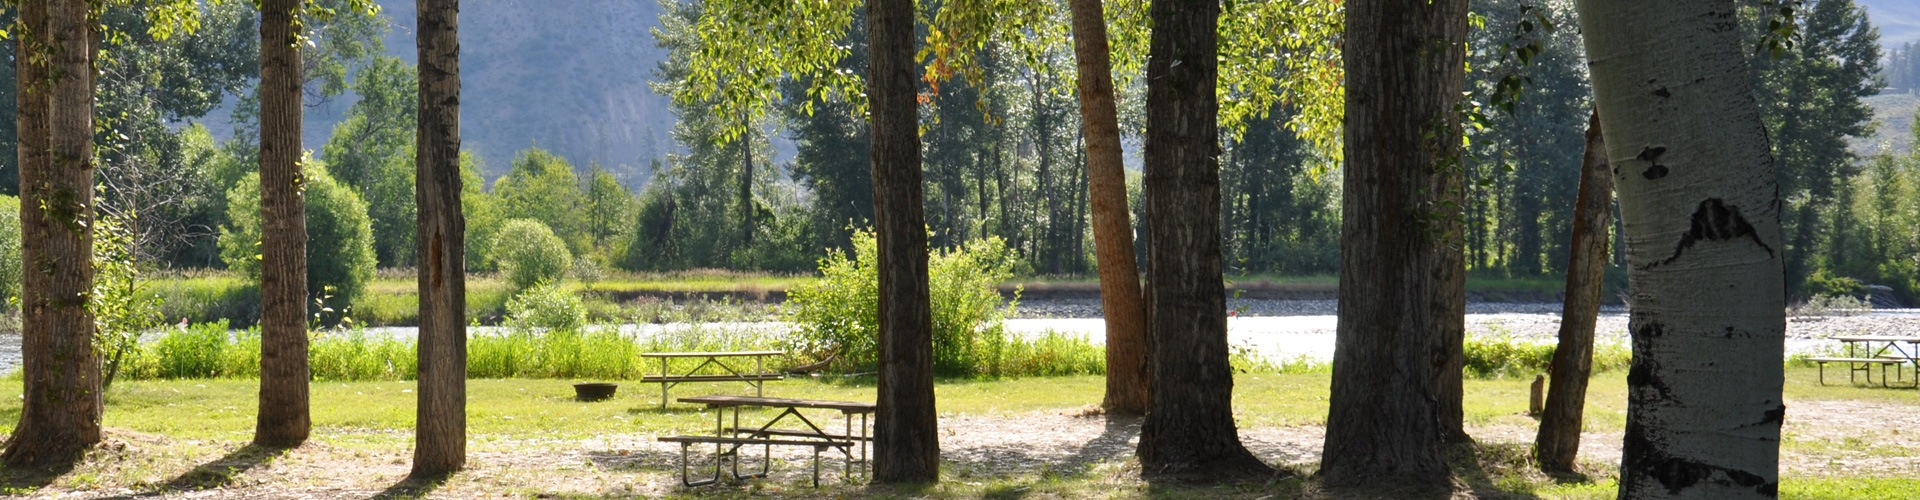 methow-river-camping